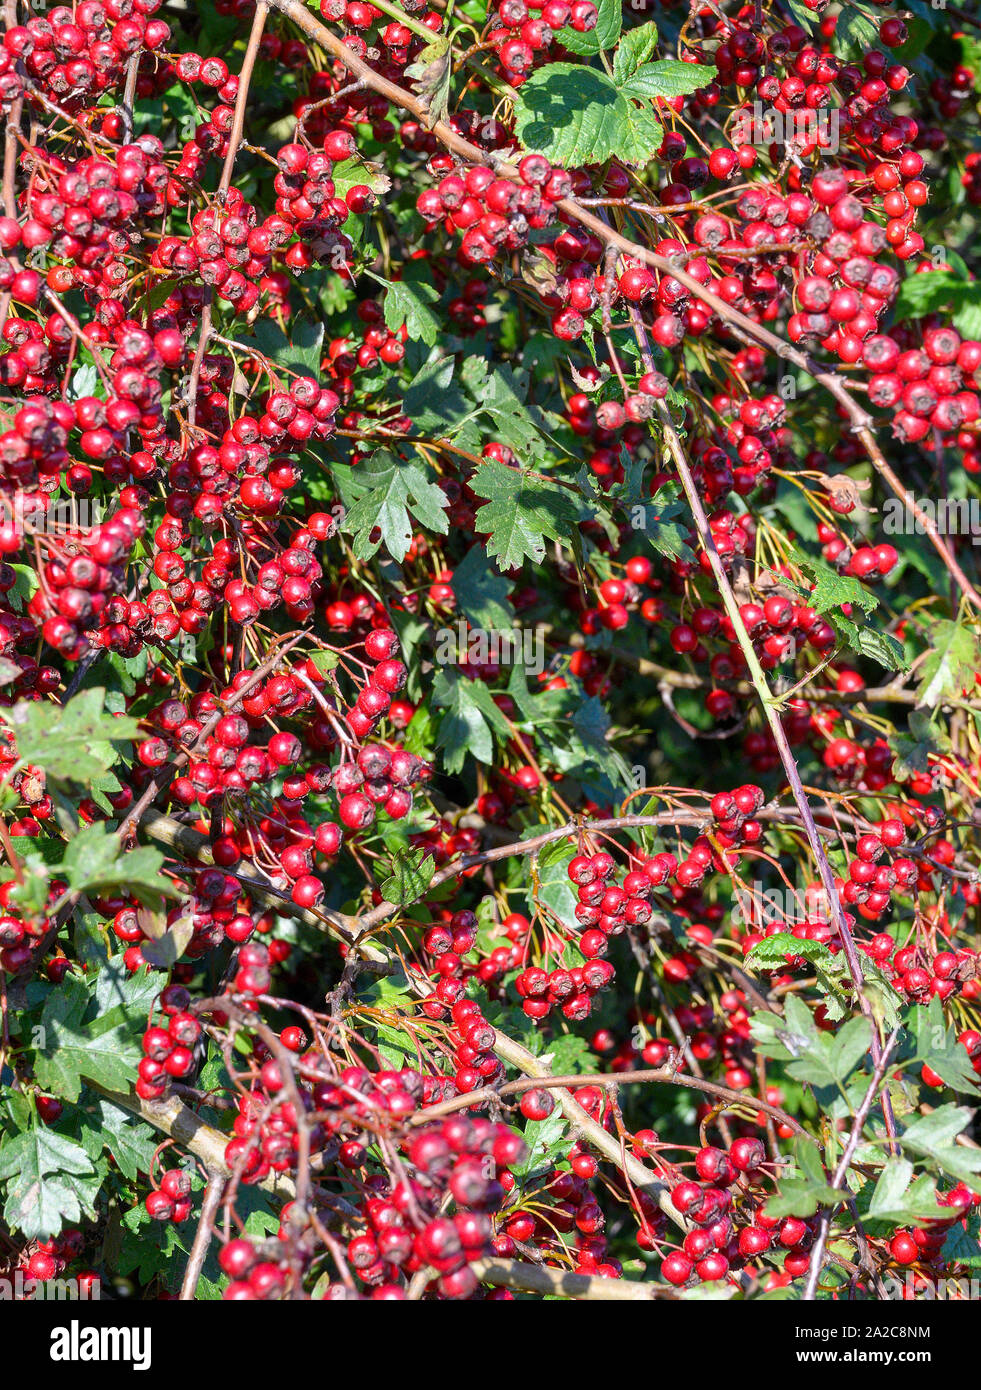 A Mass Of Bright Red Berries On A Hawthorn Bush The Hawthorn Is